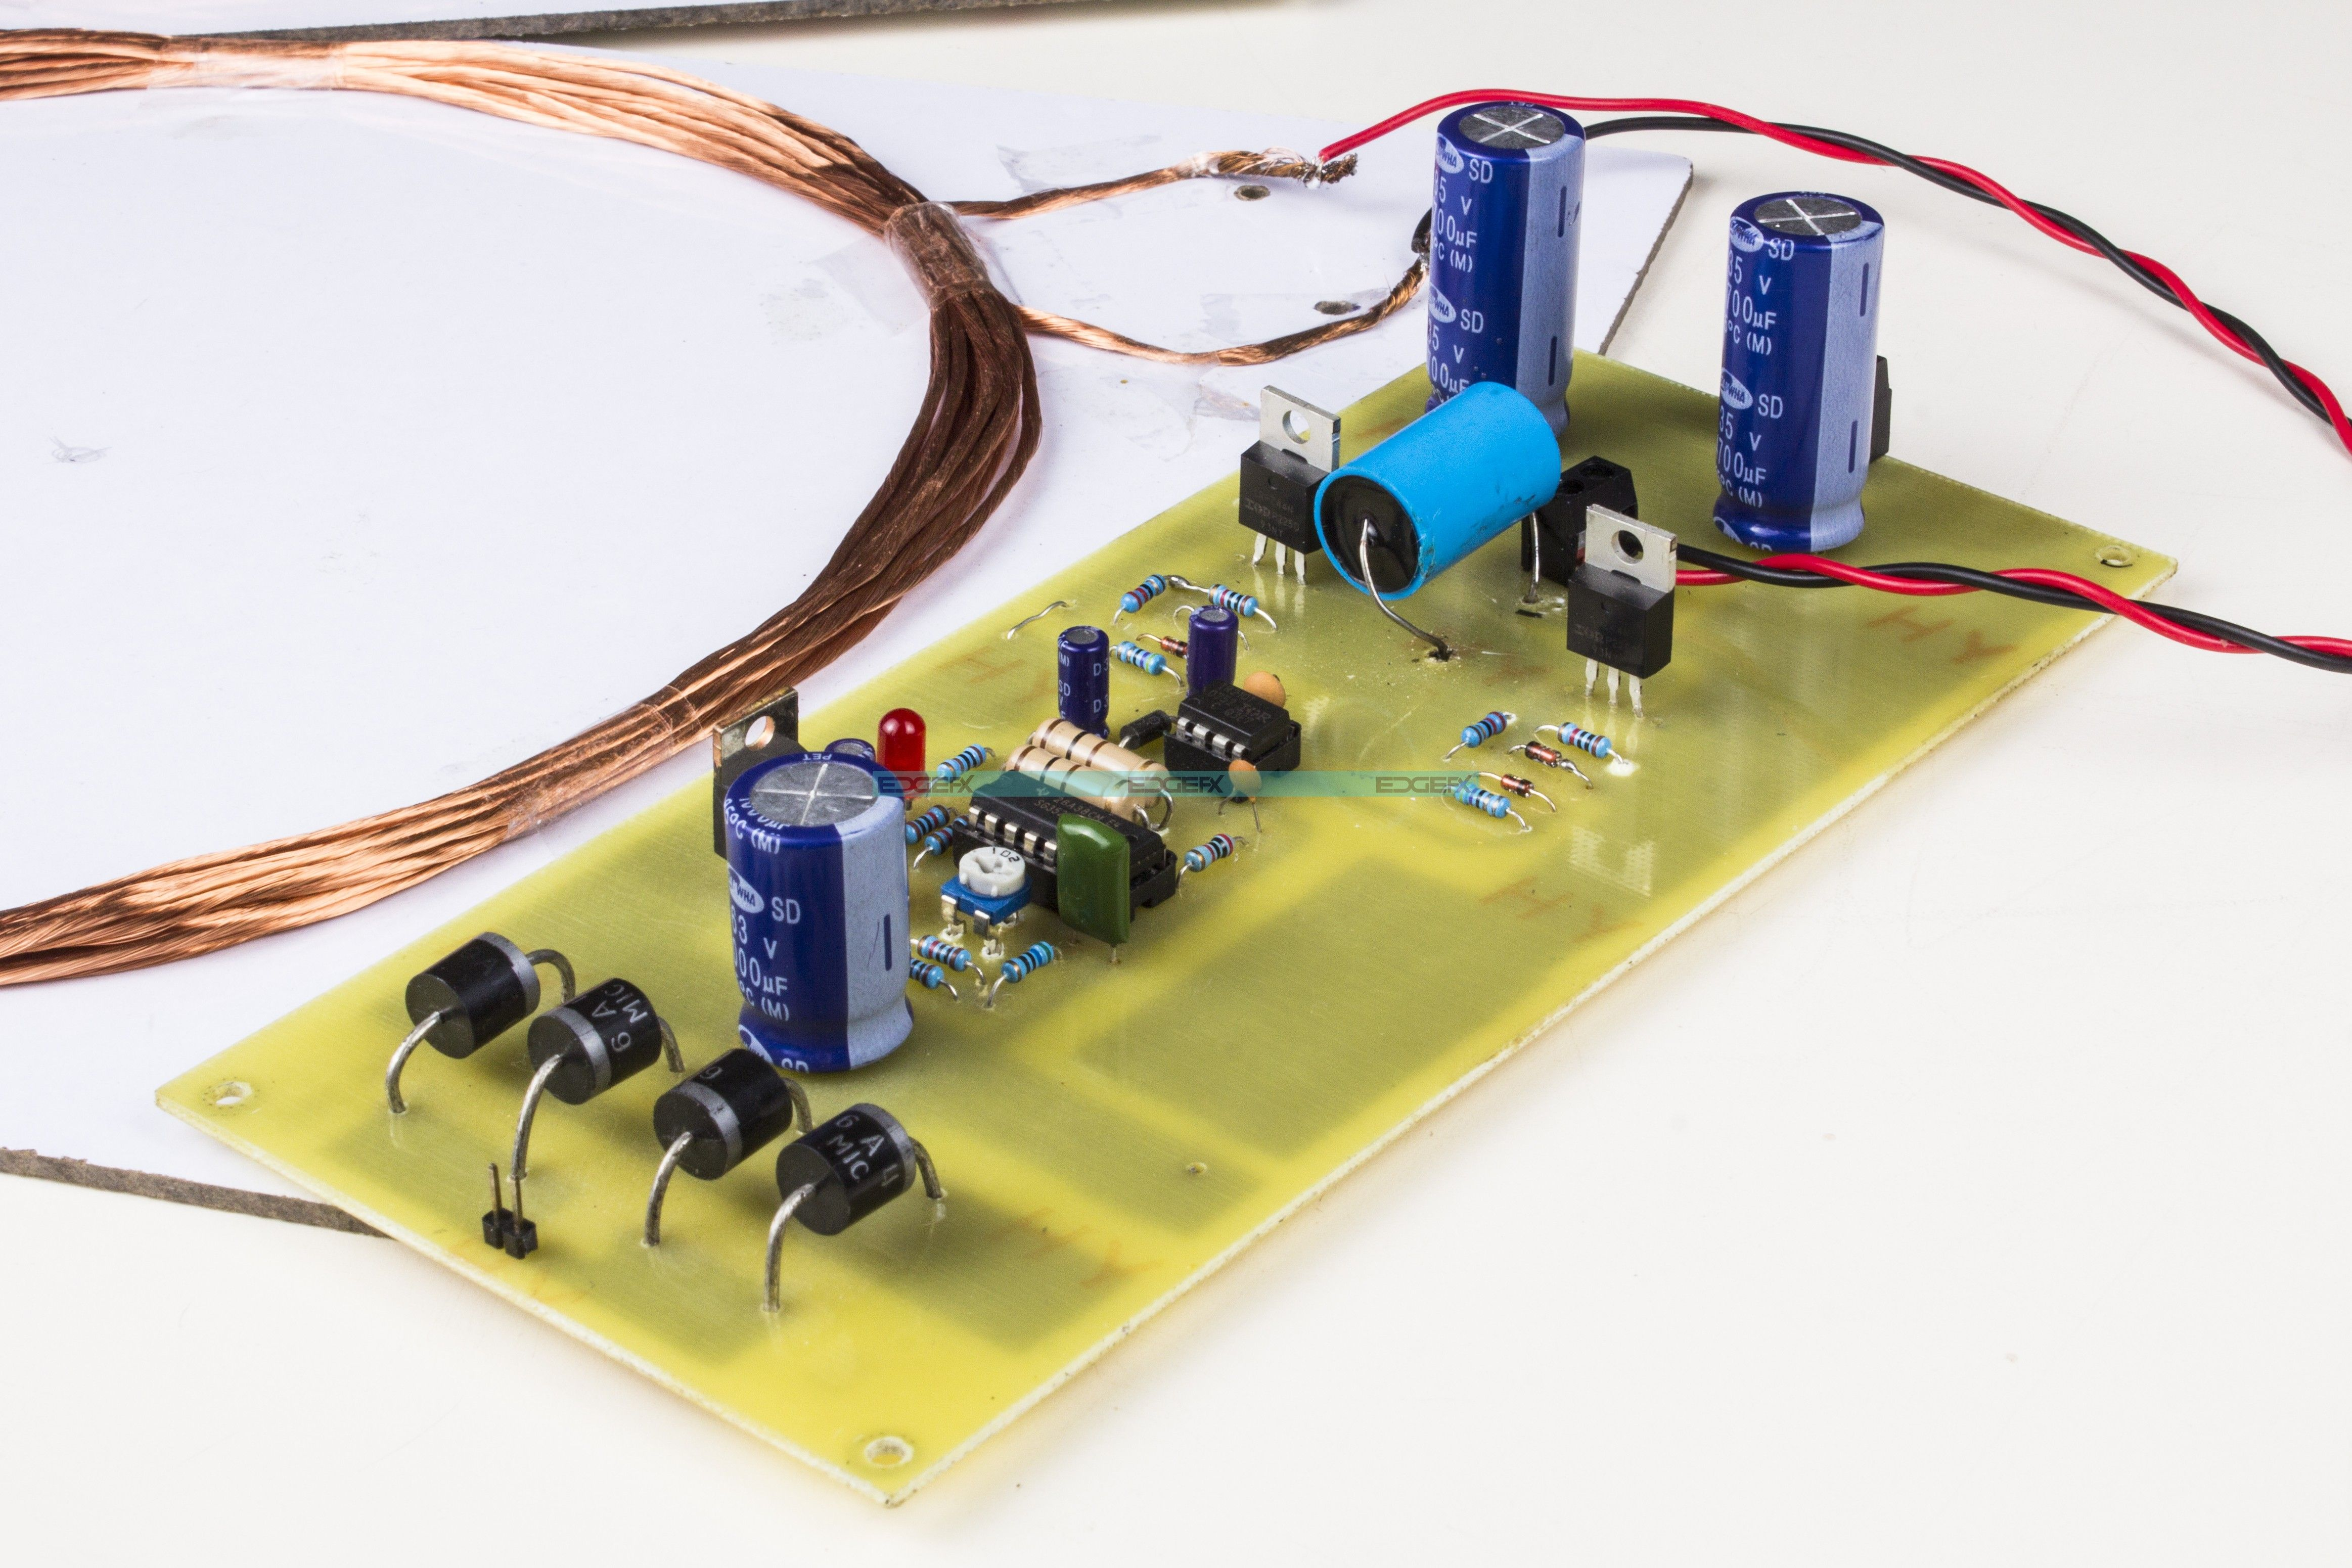 This project is used to develop a wireless power transfer for